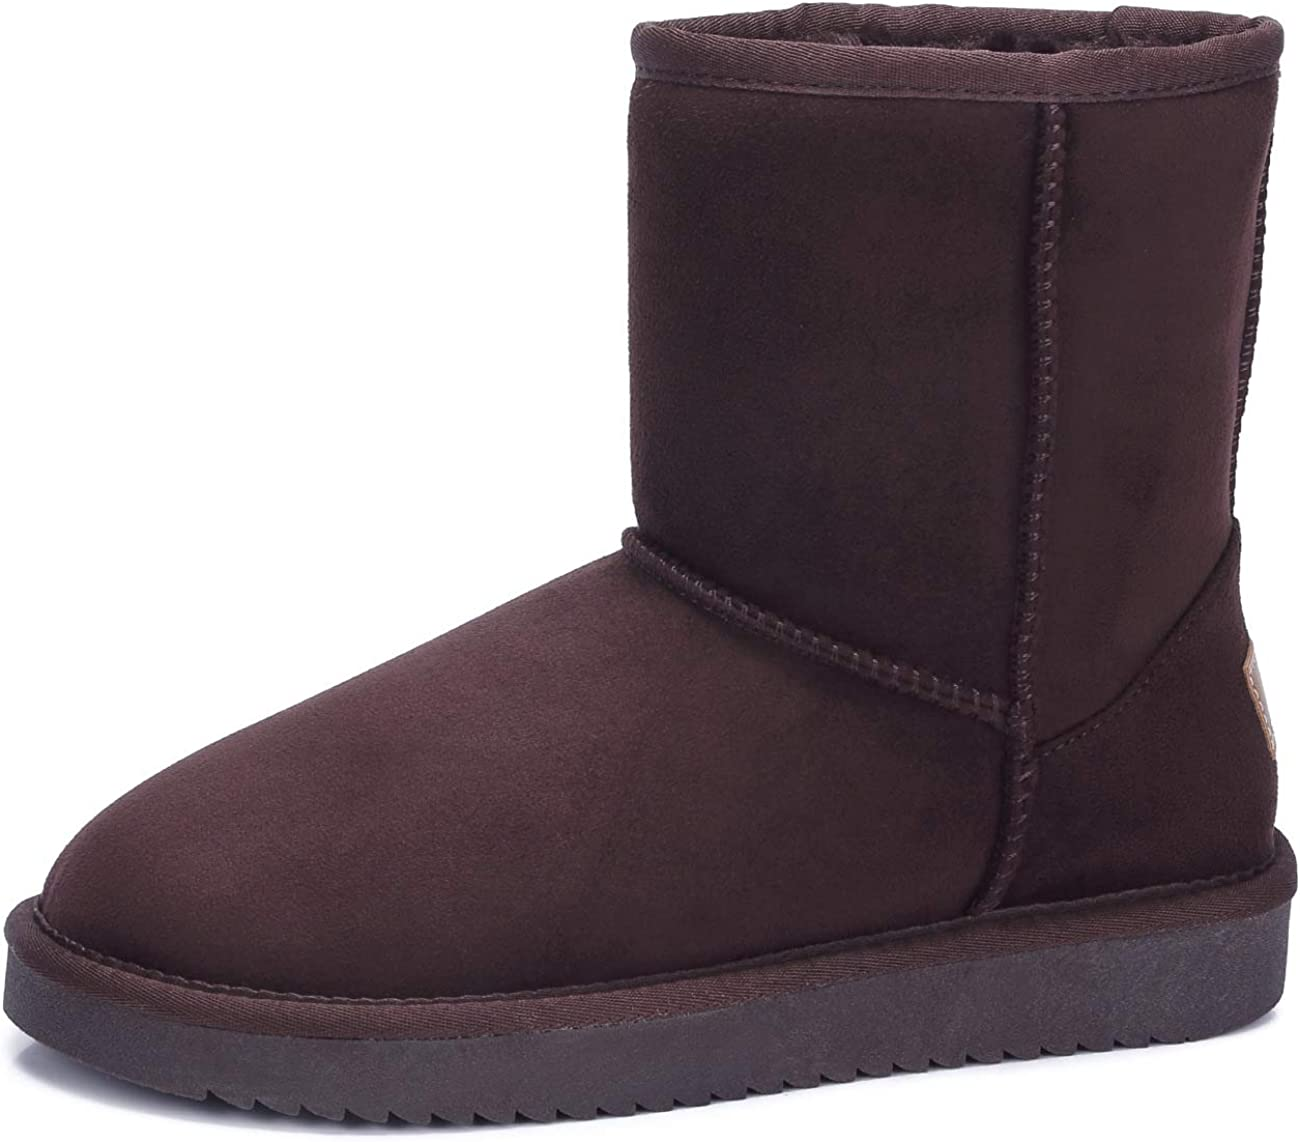 Women's Warm Winter Boots Ankle High